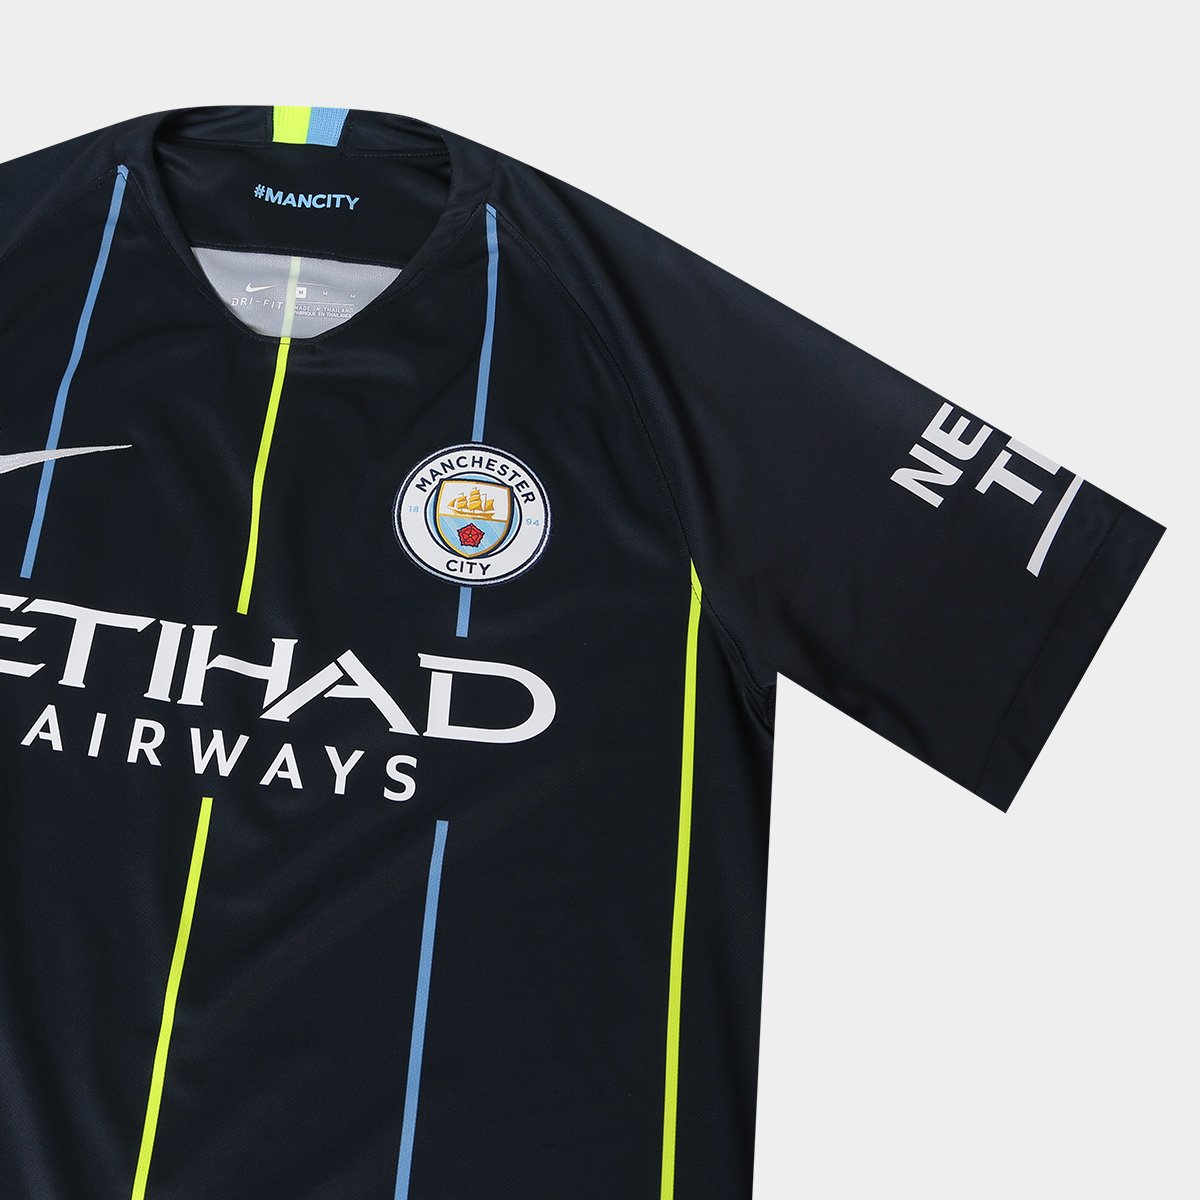 264ad80abb Camisa Manchester City Away 2018 s n° - Torcedor Nike Masculina ...